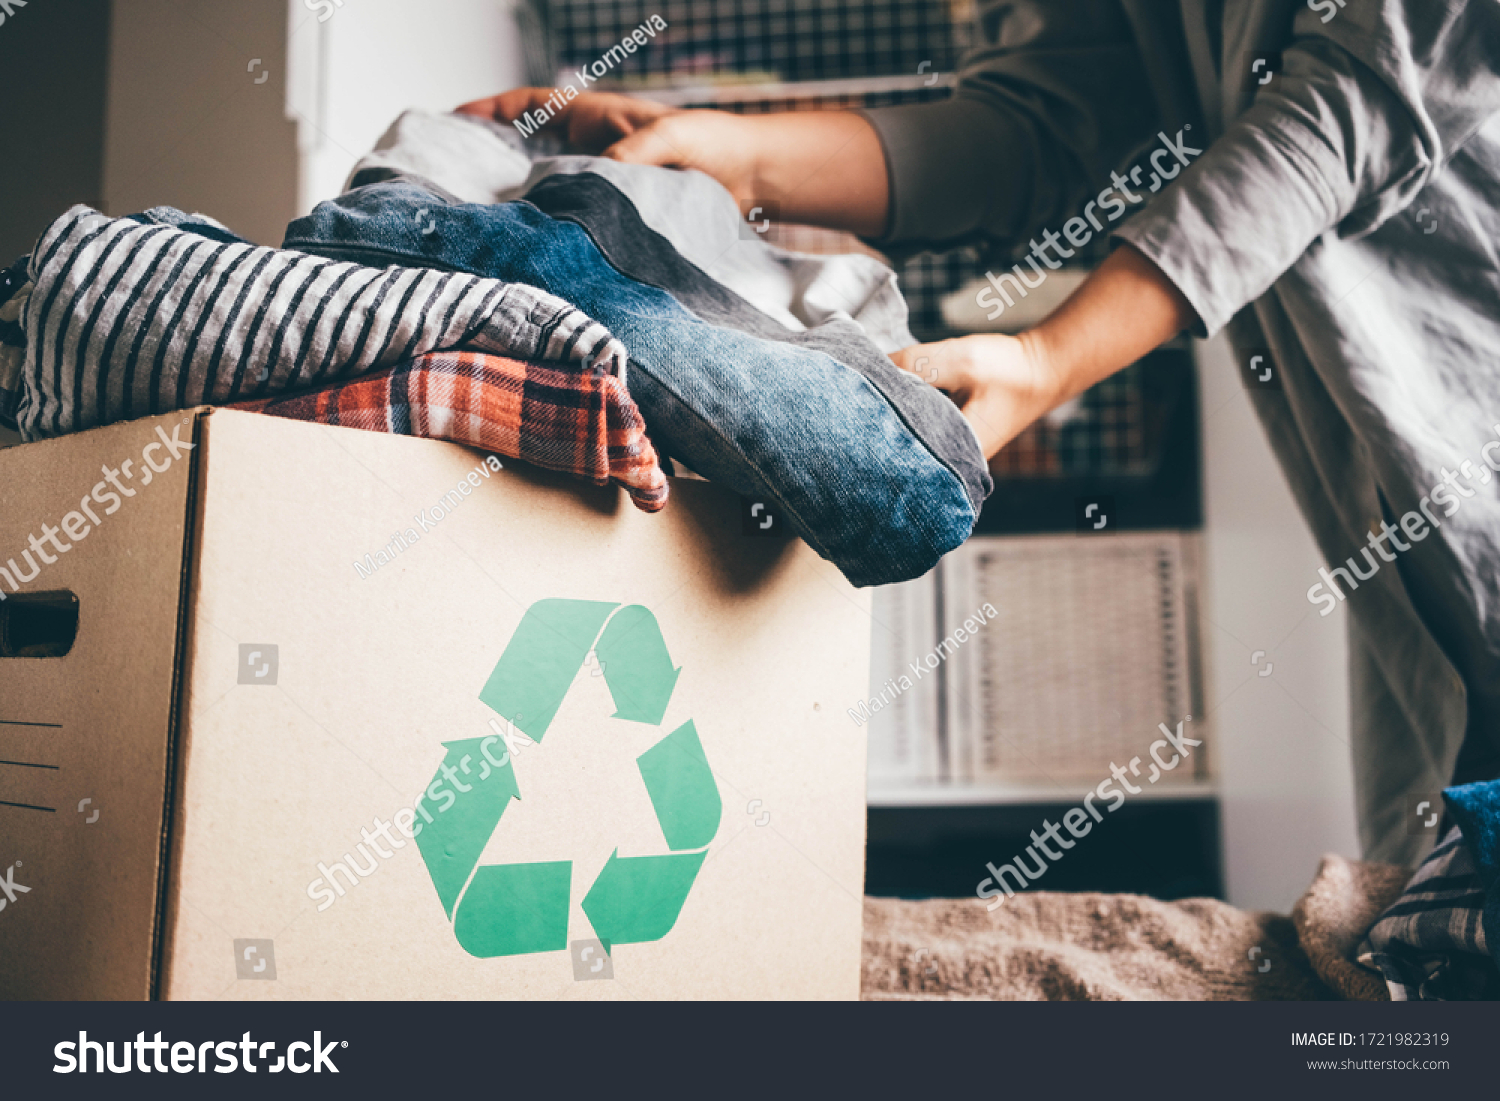 Recycle clothes concept. Recycling box full of clothes. #1721982319